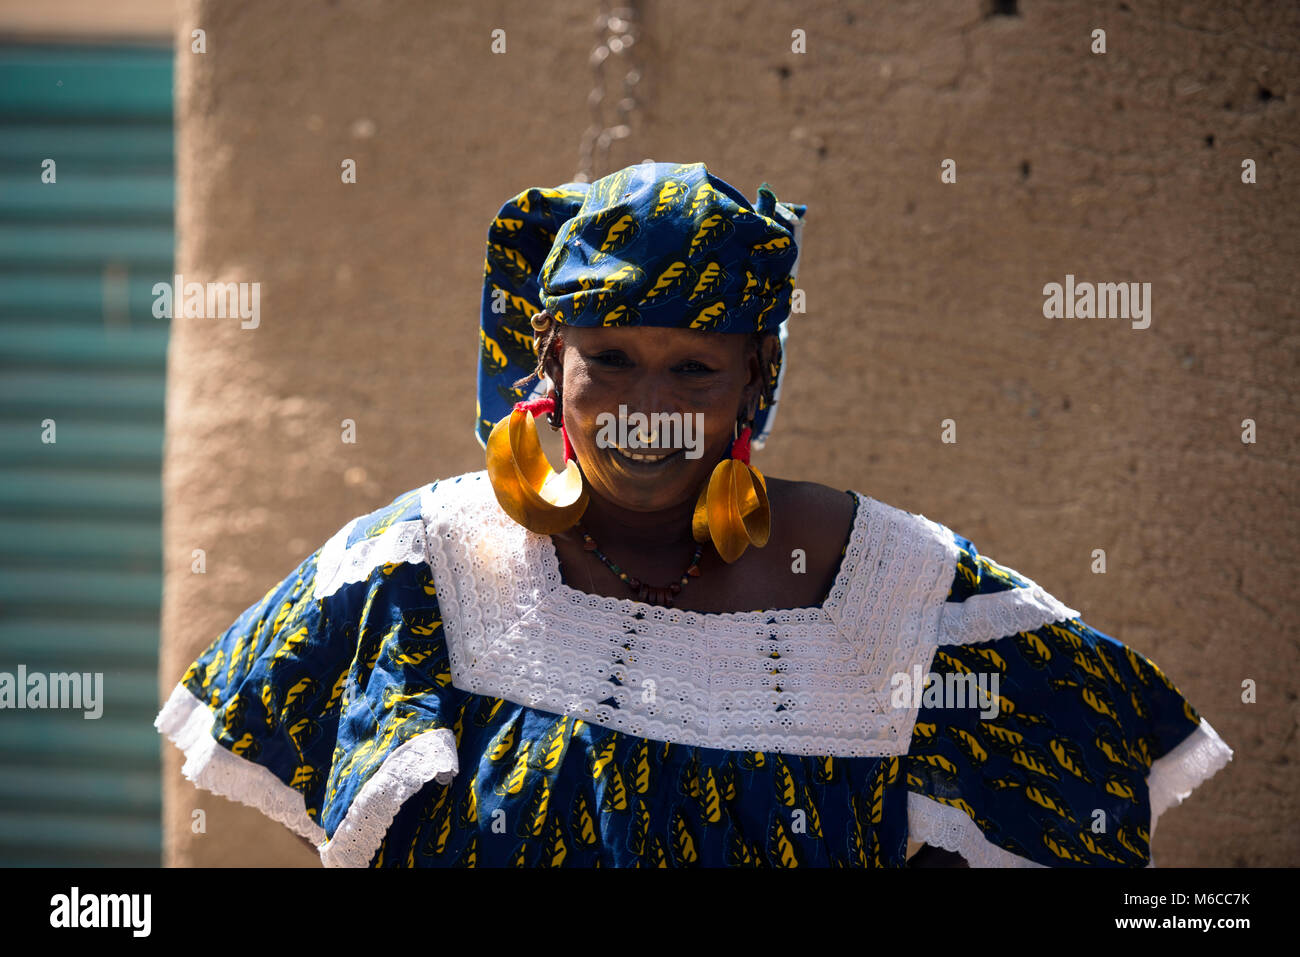 An indigenous, ethnic Fulani woman who makes earrings for a living. Mali, West Africa. - Stock Image